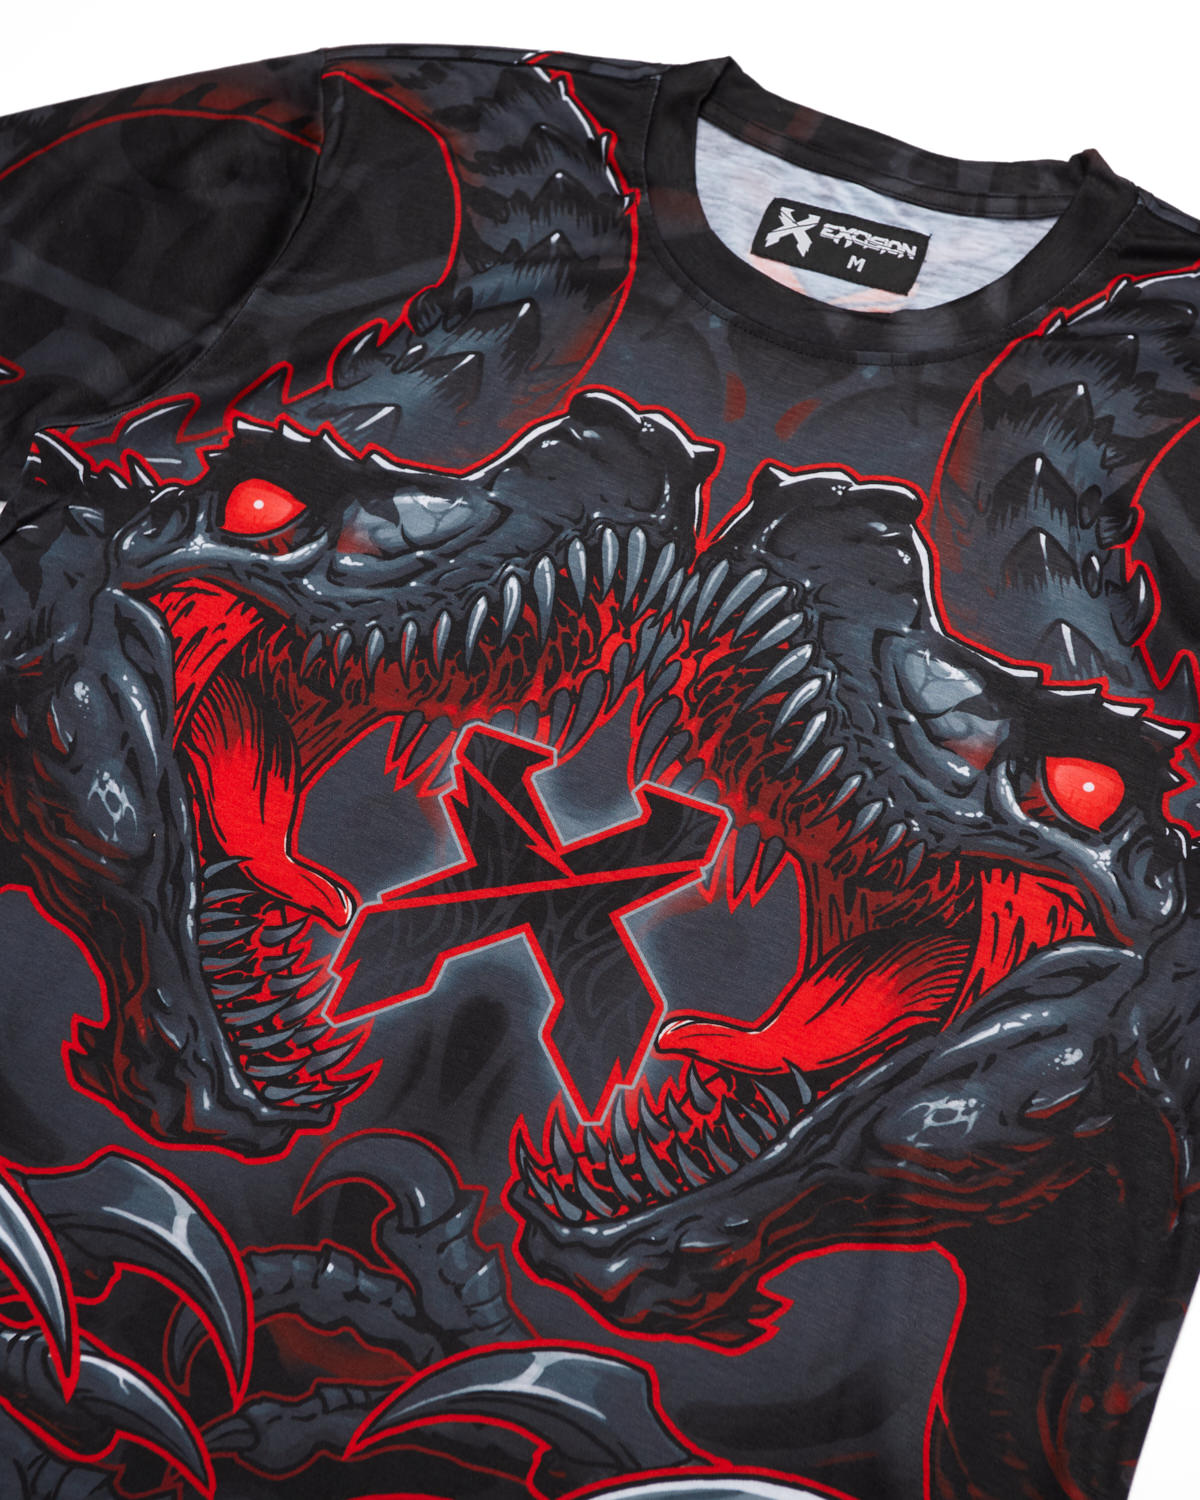 'Raptor Attack' Dye Sub Tee - Red